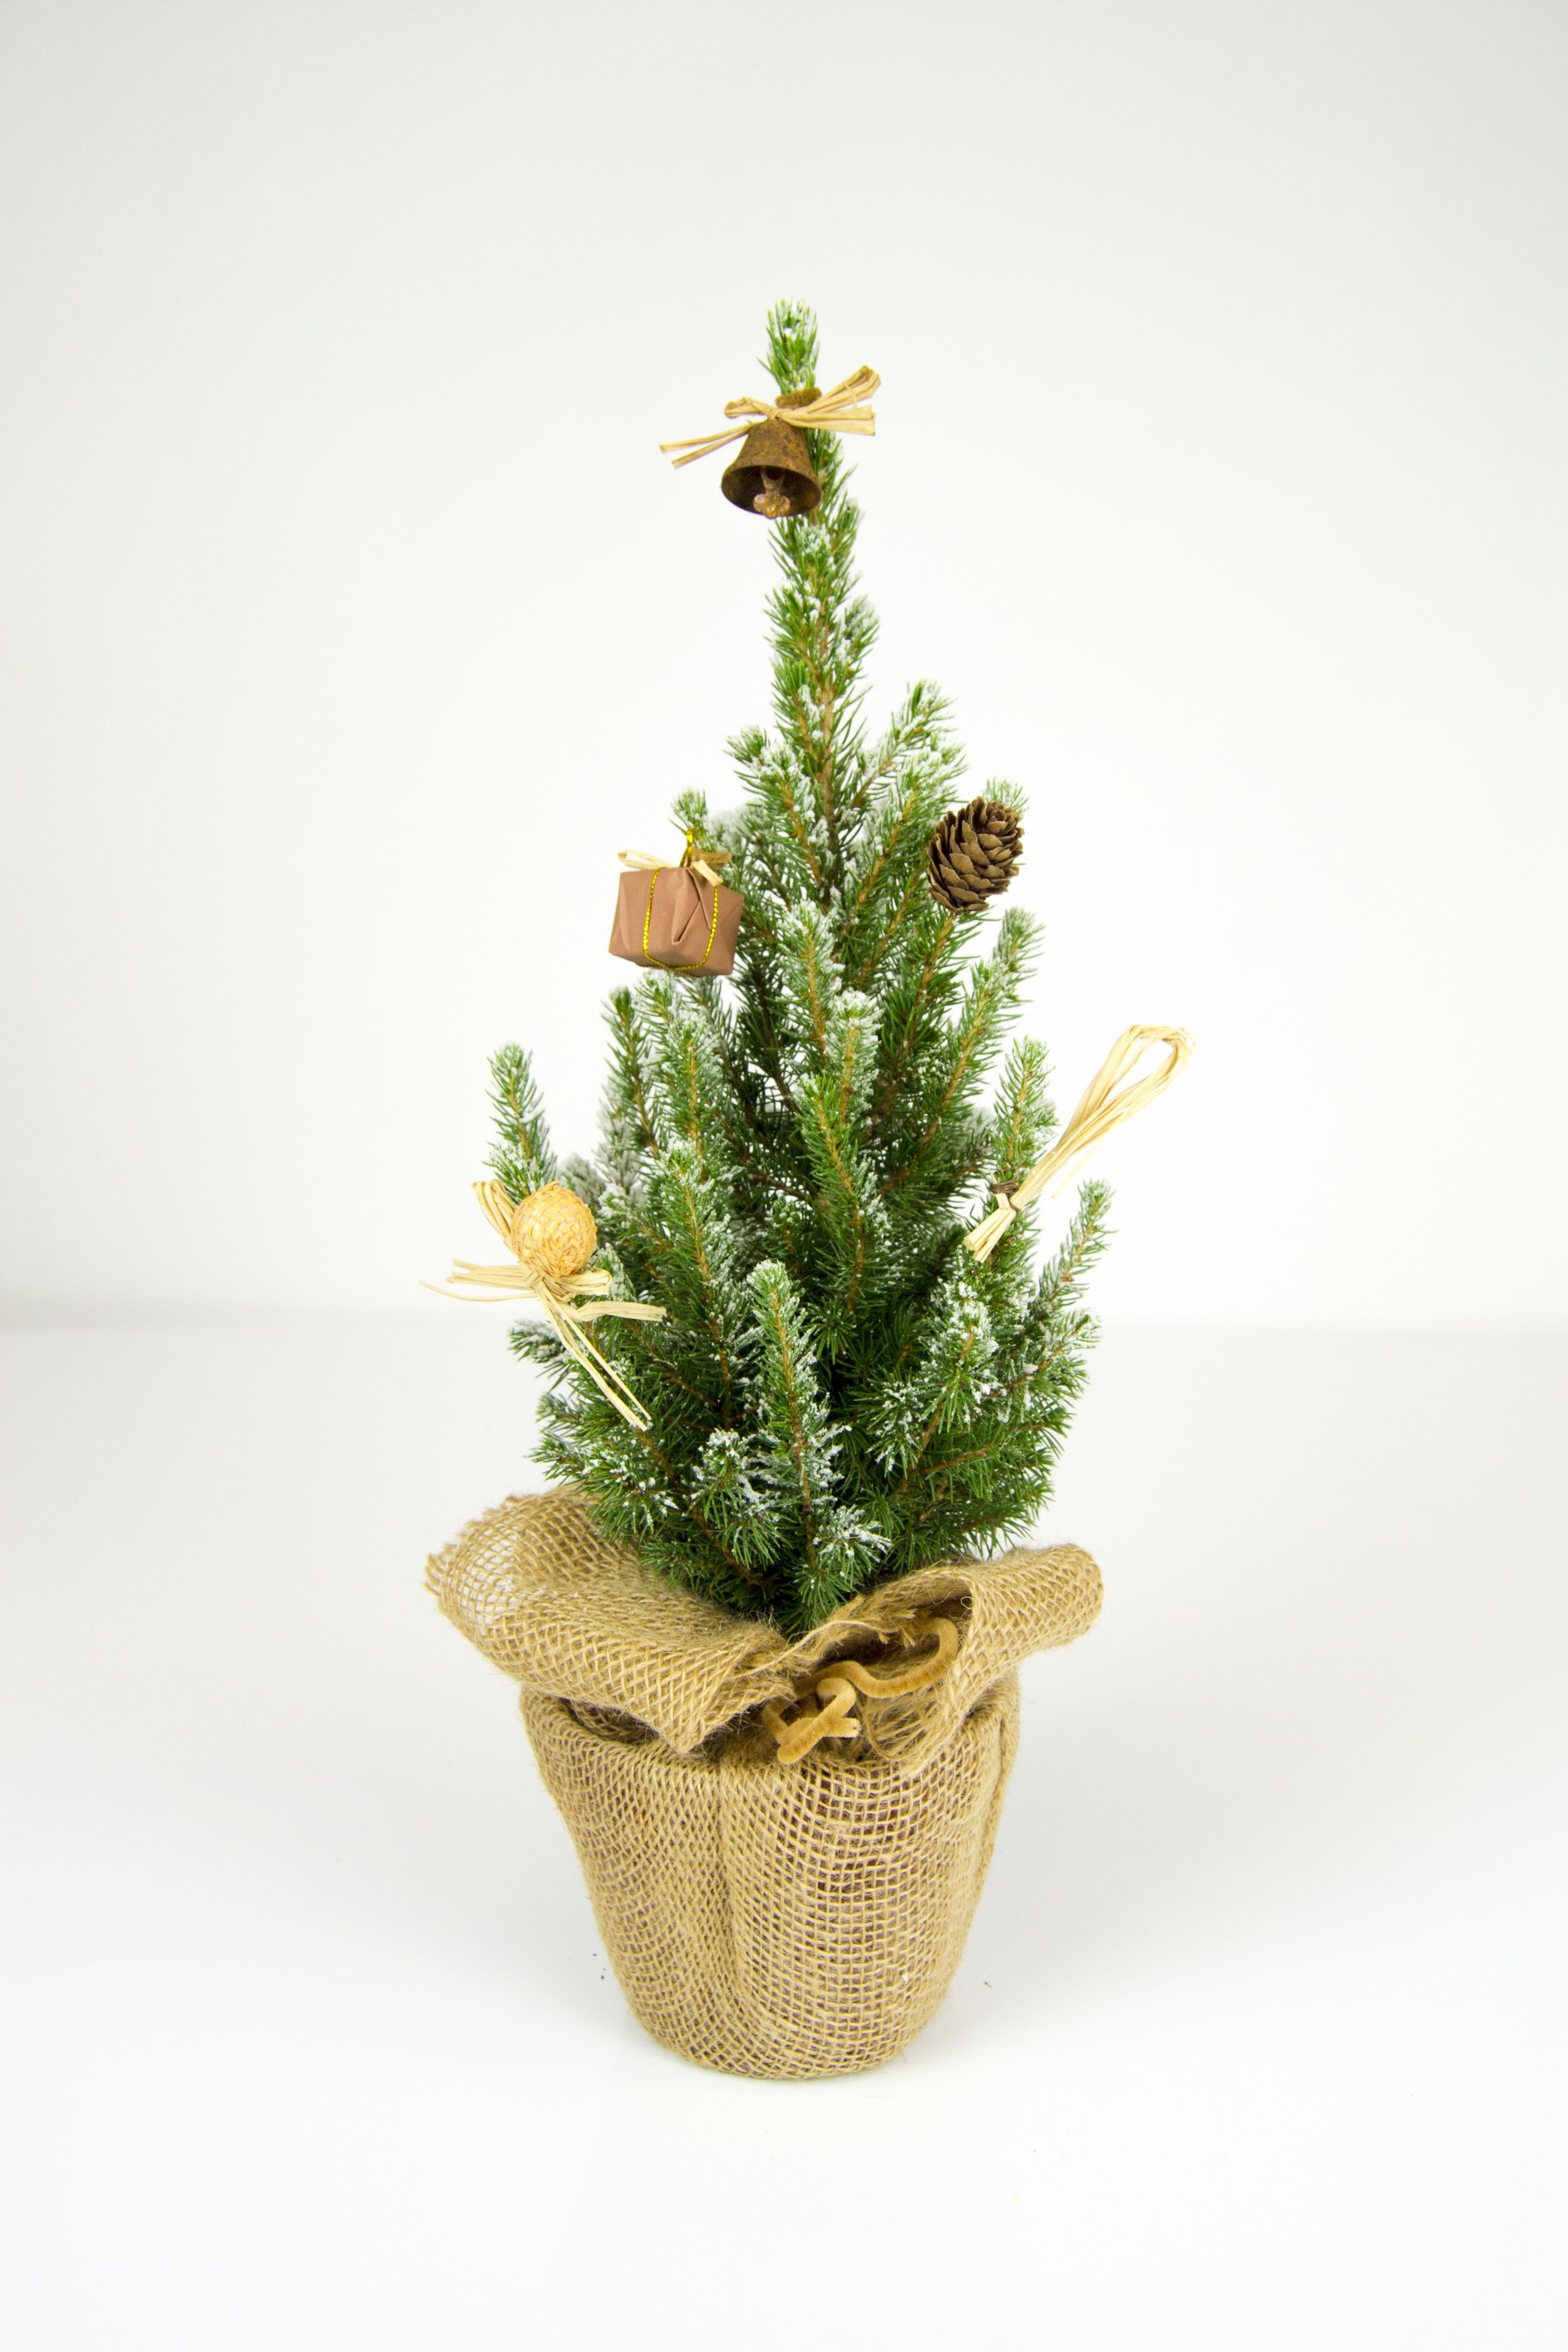 Cute potted Christmas Tree, perfect for your office desk